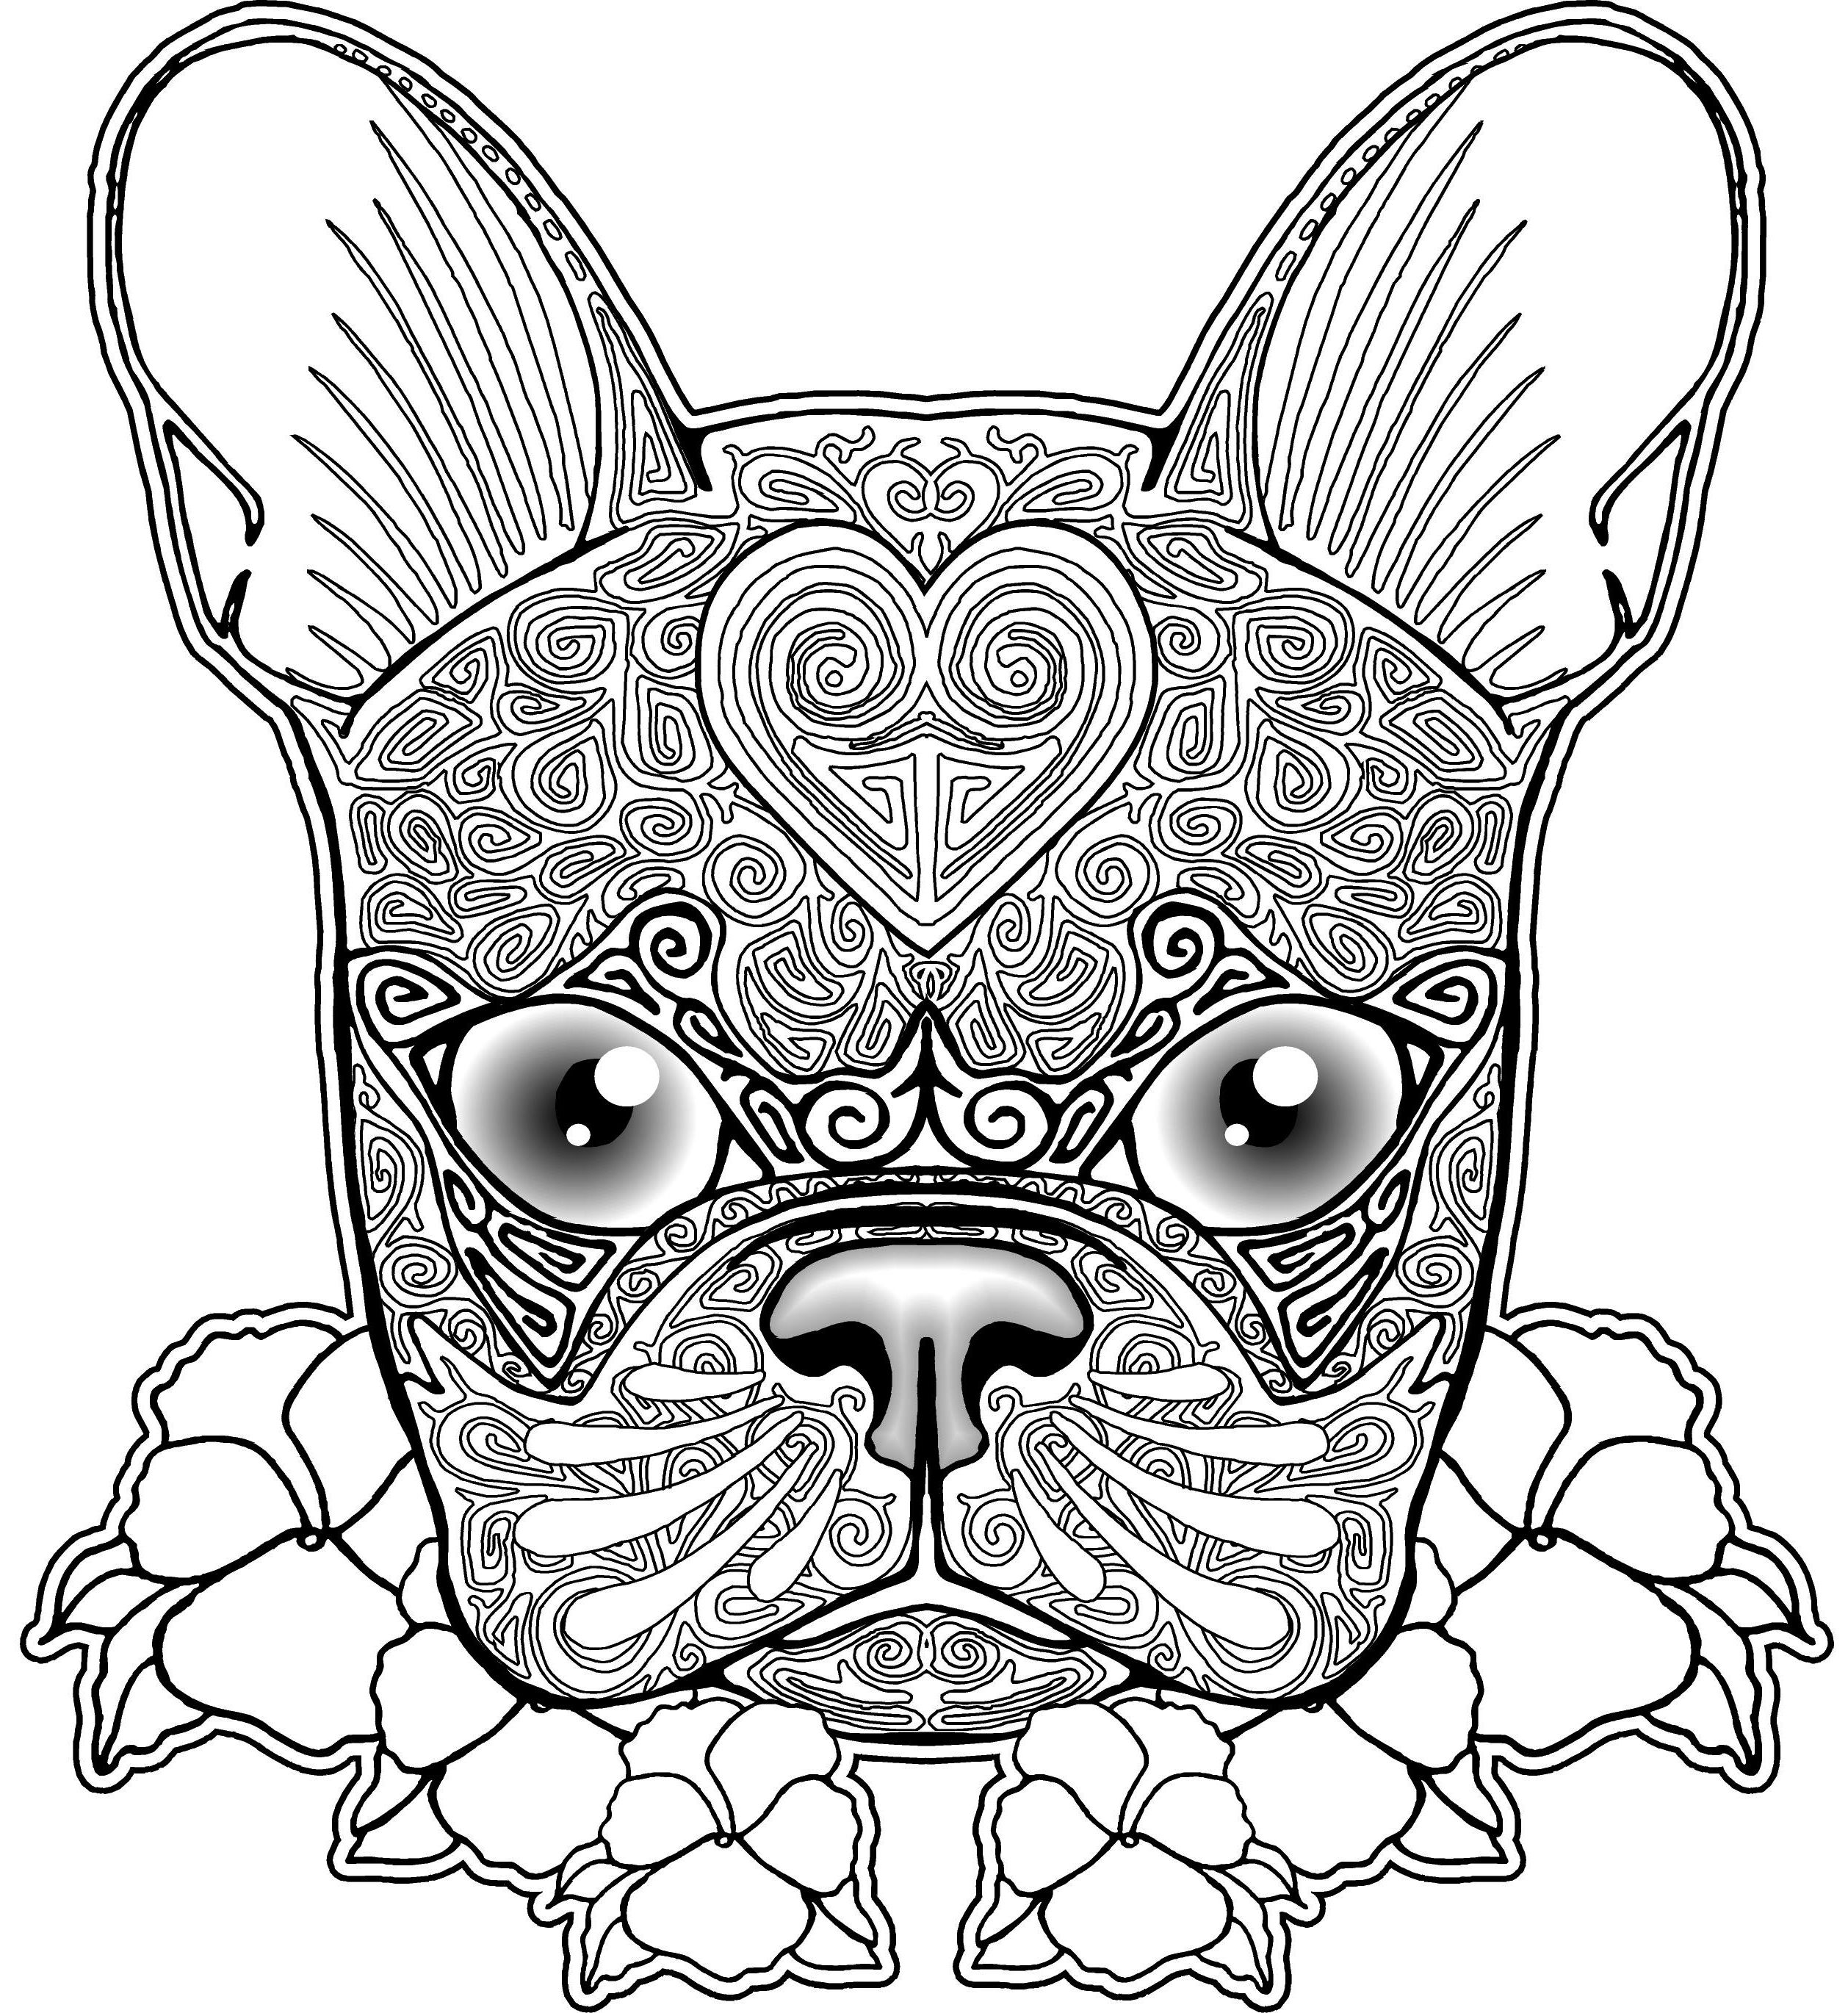 difficult dog coloring pages dog dogs adult coloring pages coloring dog difficult pages